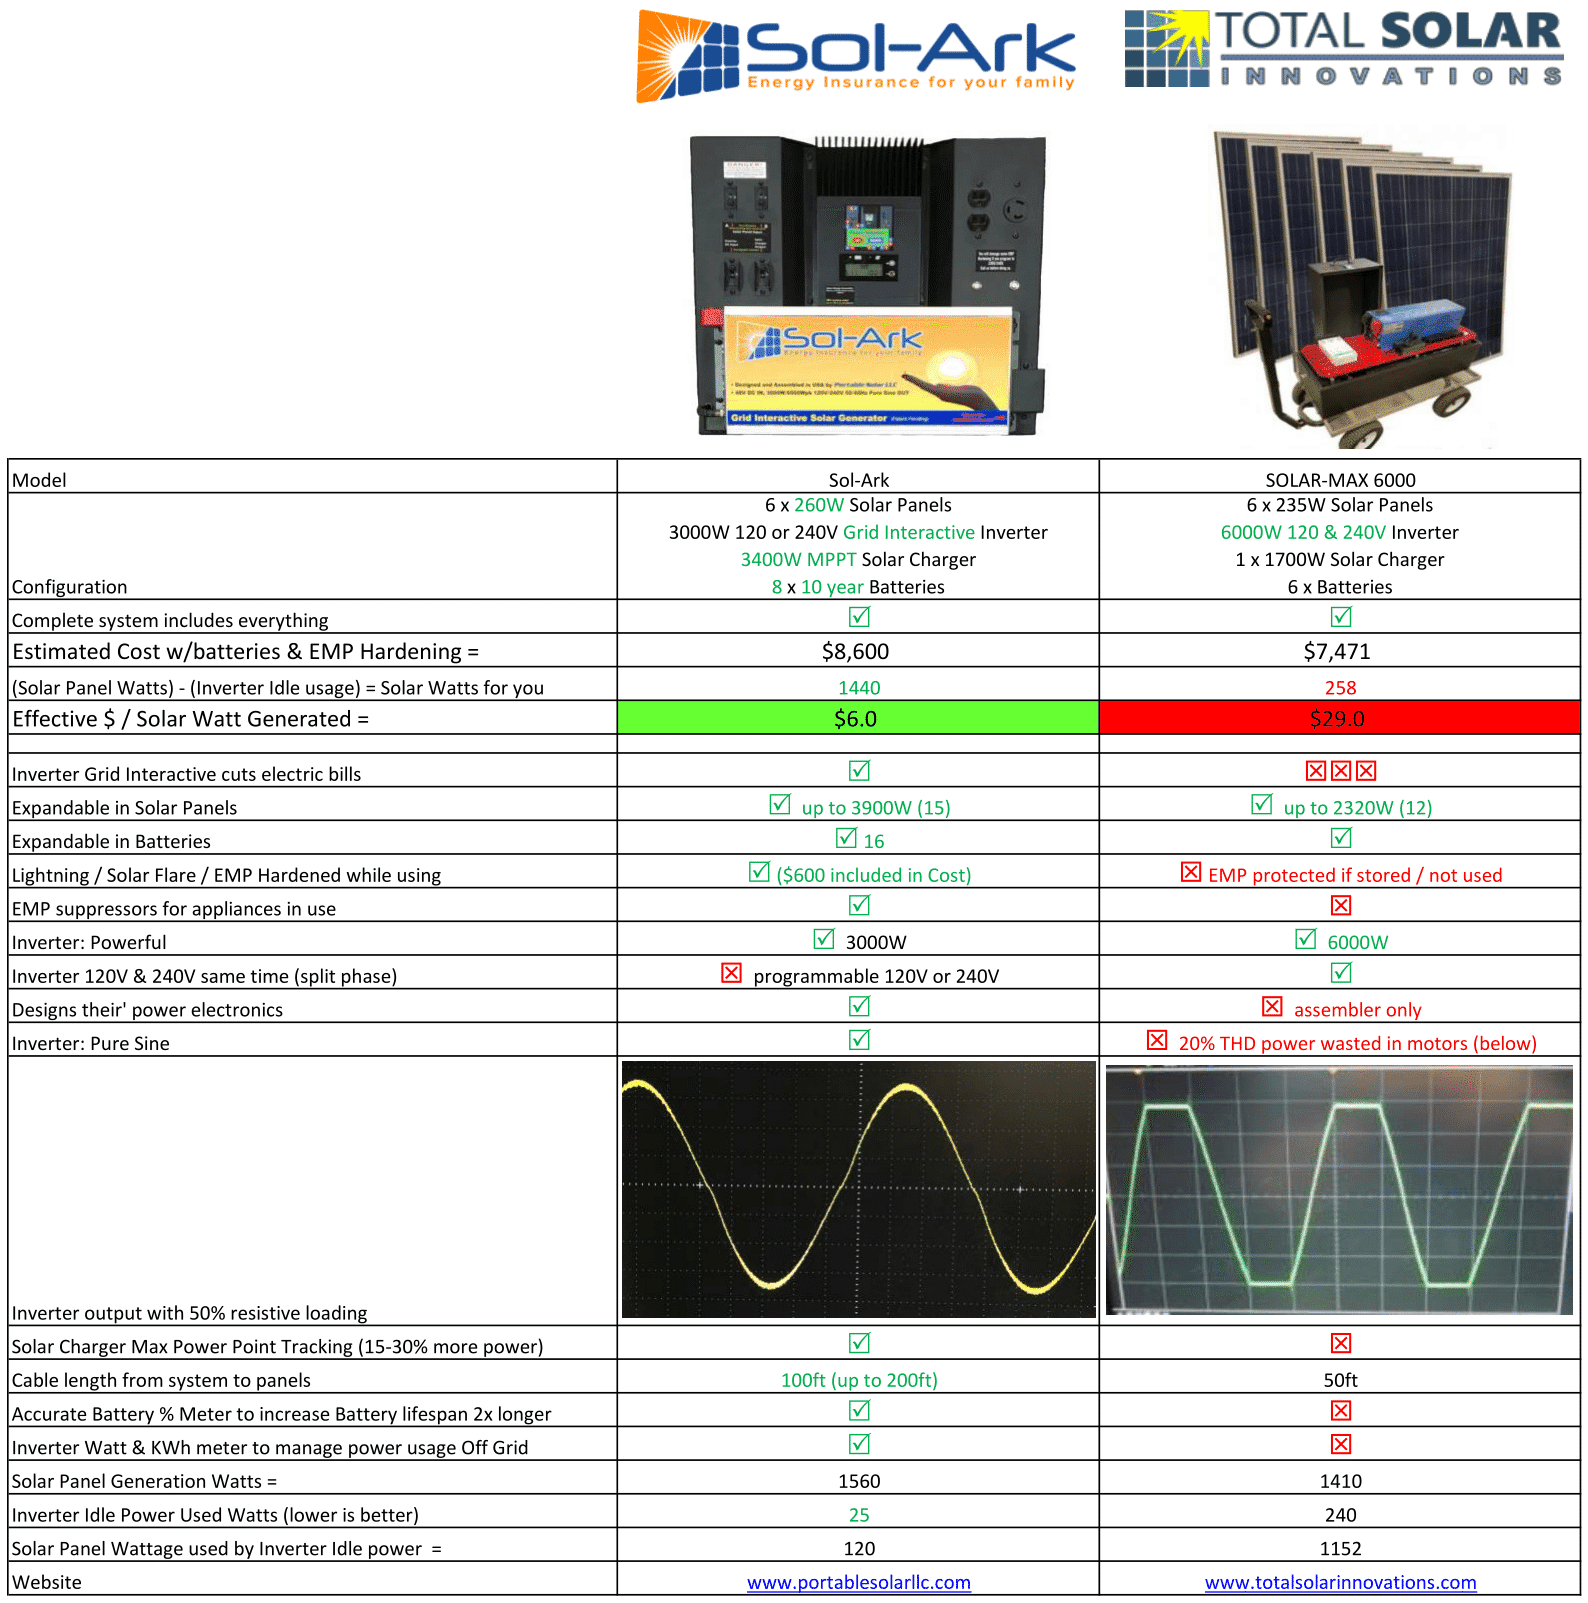 Compare Sol-Ark to Total Solar Innovations